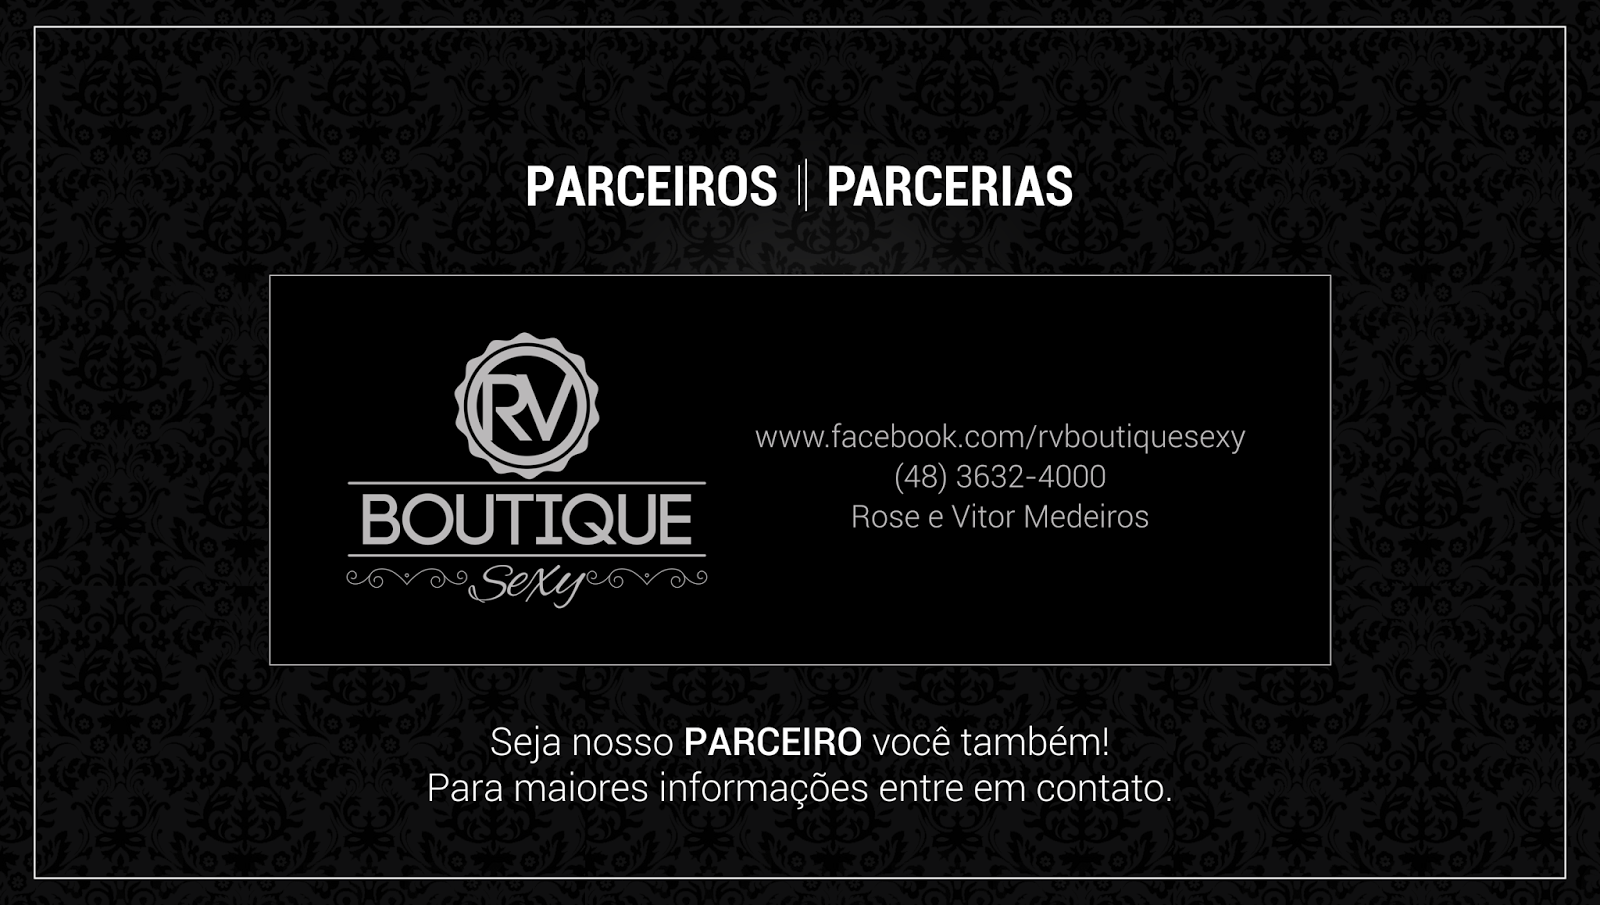 www.facebook.com/rvboutiquesexy